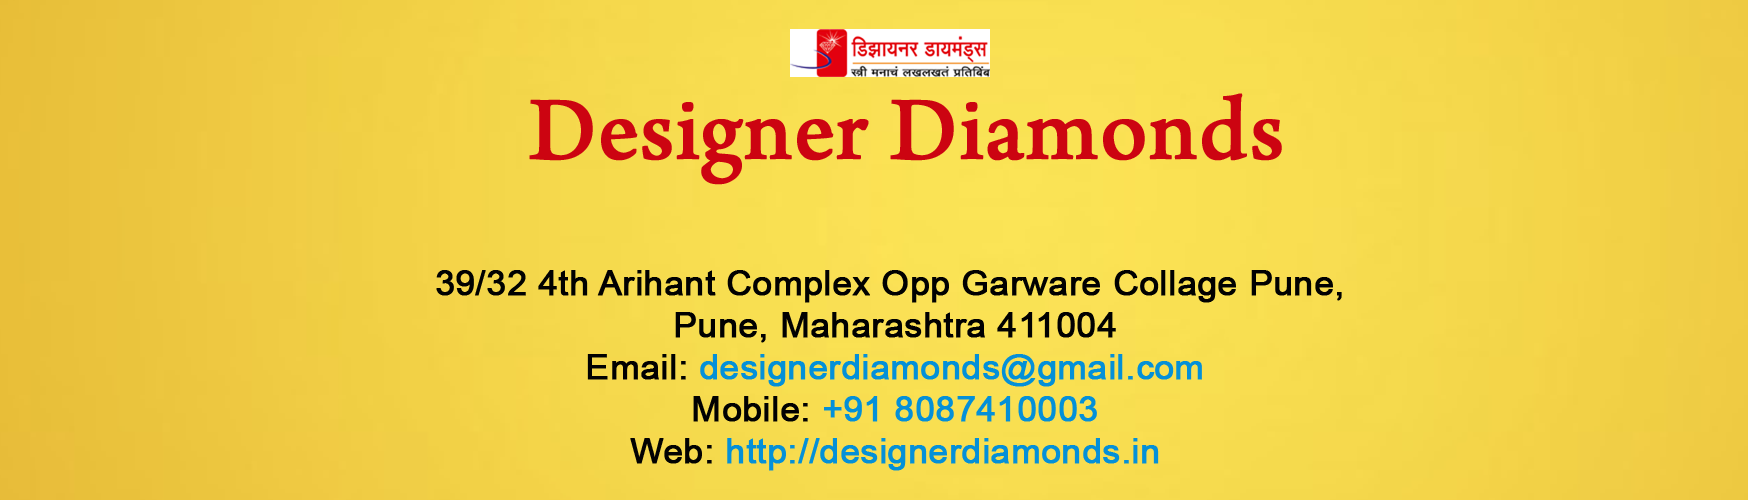 Designer Diamonds